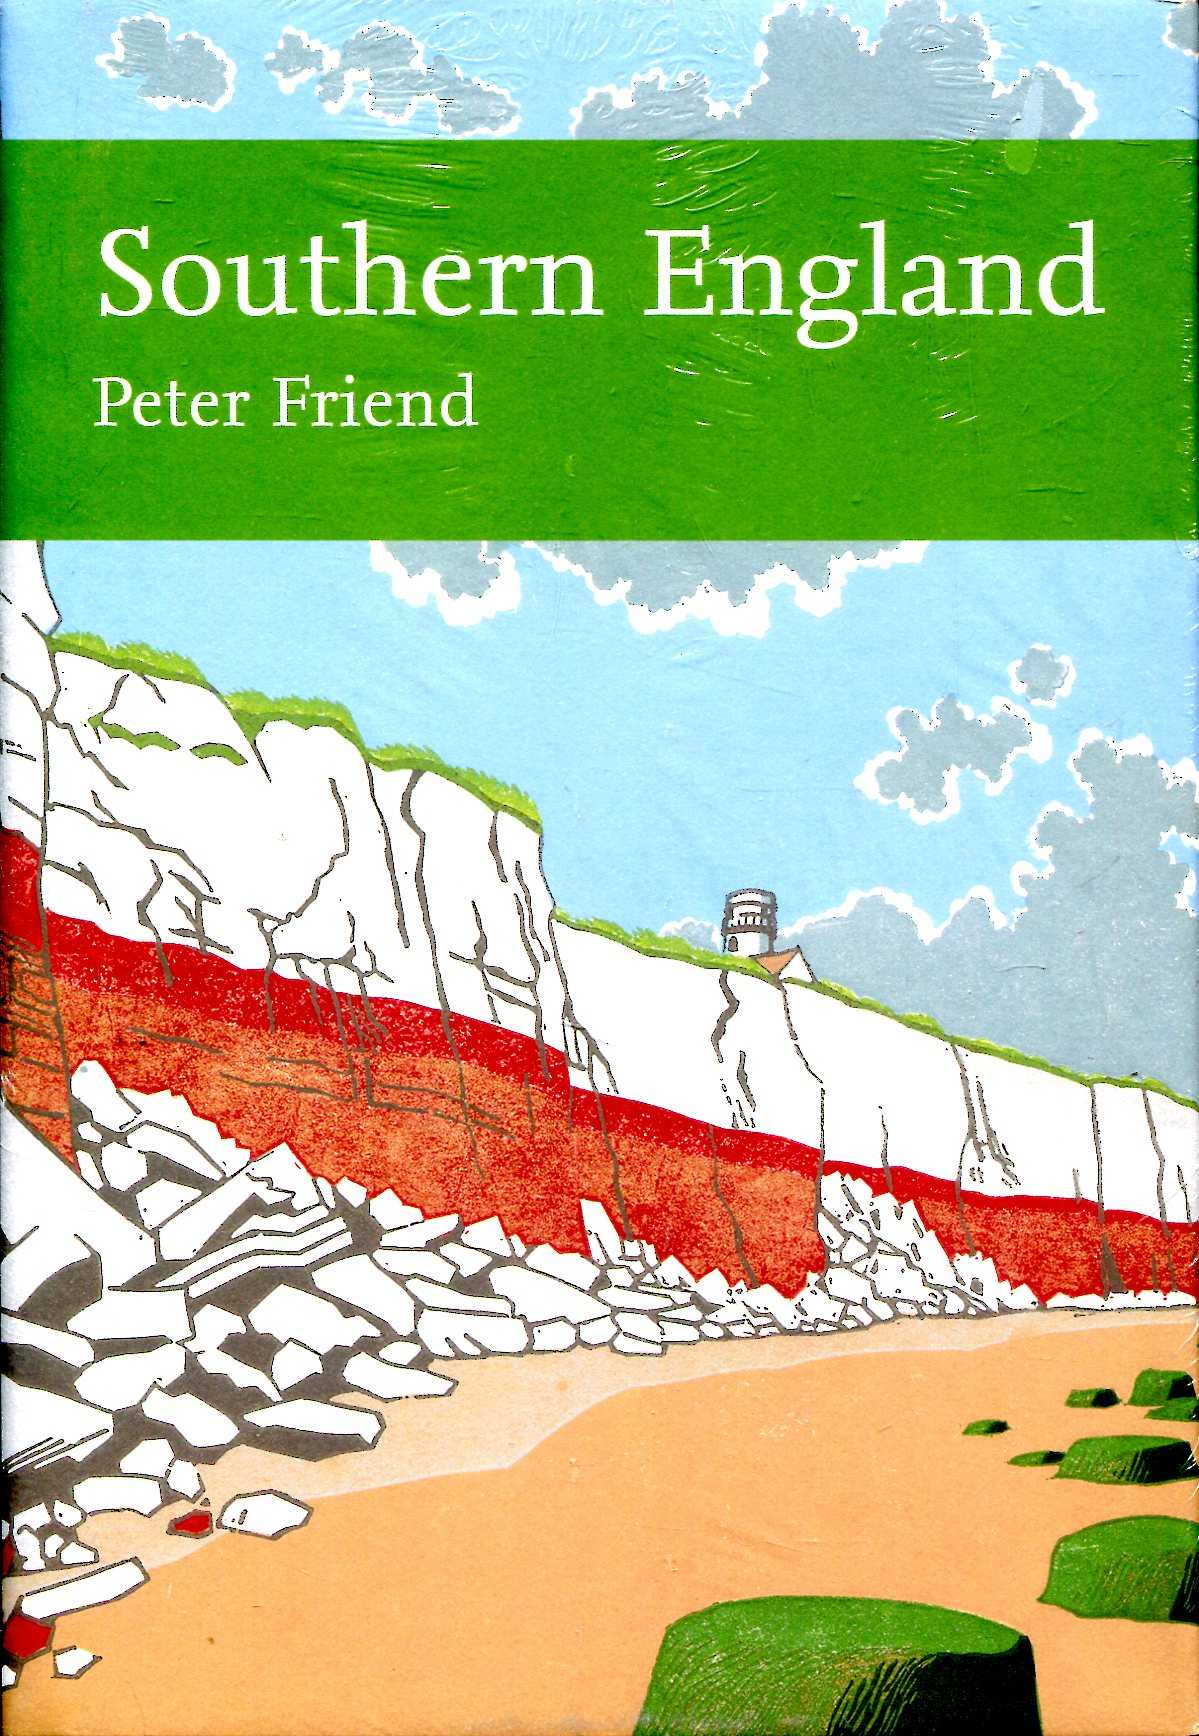 Image for Collins New Naturalist Library No. 108 - Southern England: The Geology and Scenery of Lowland England